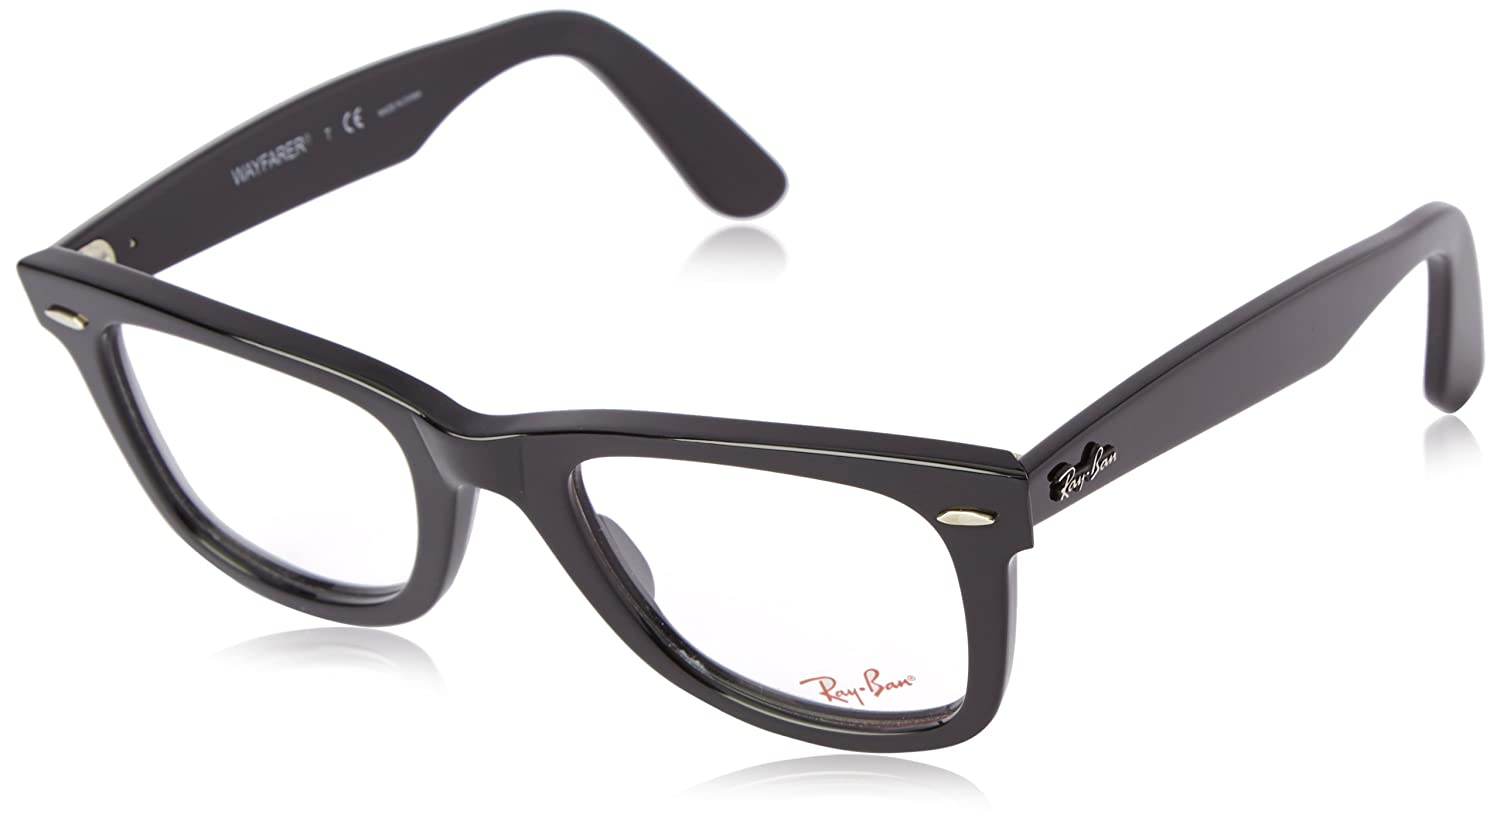 Ray Ban Glasses Frames Amazon « Heritage Malta